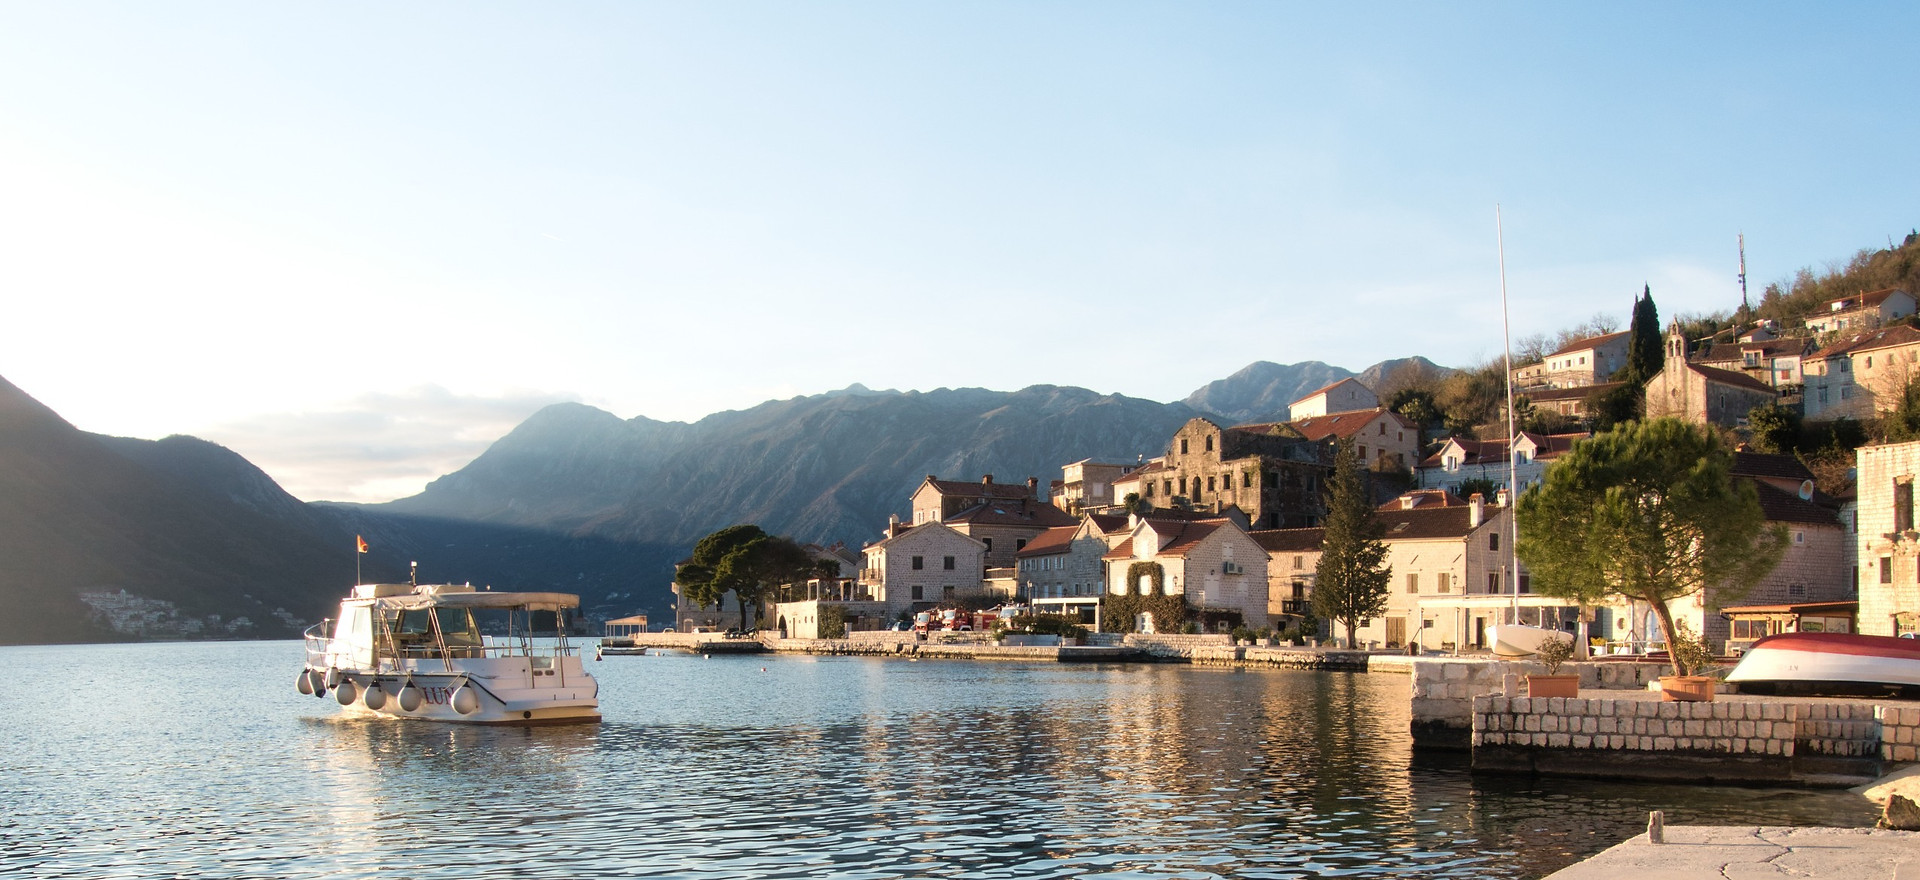 The Balkan Series - Part 6: Kotor Bay - Pearl of the Balkans